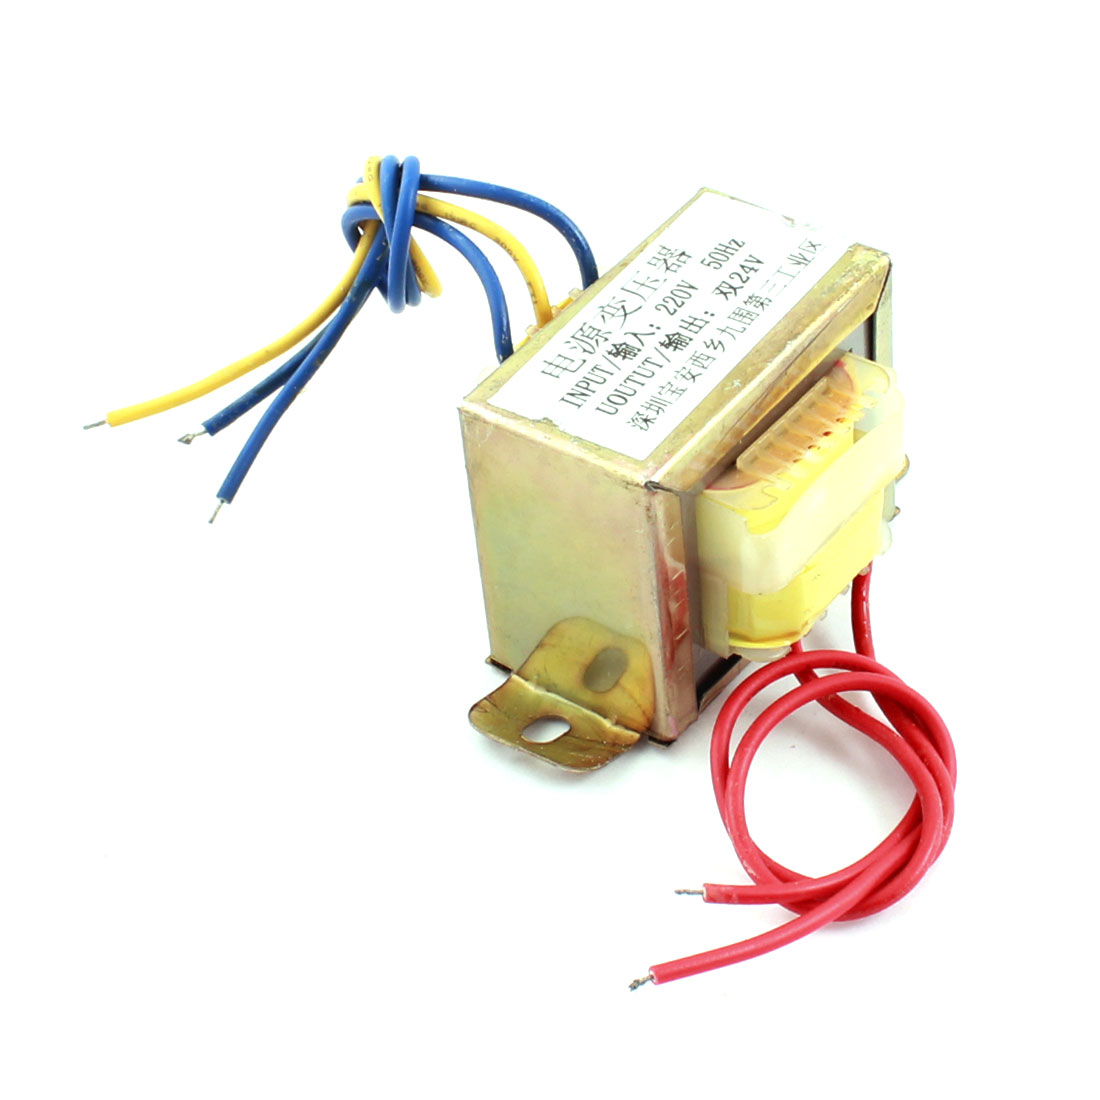 220V 50Hz Input 24V Output Single Phase EI Core Power Transformer